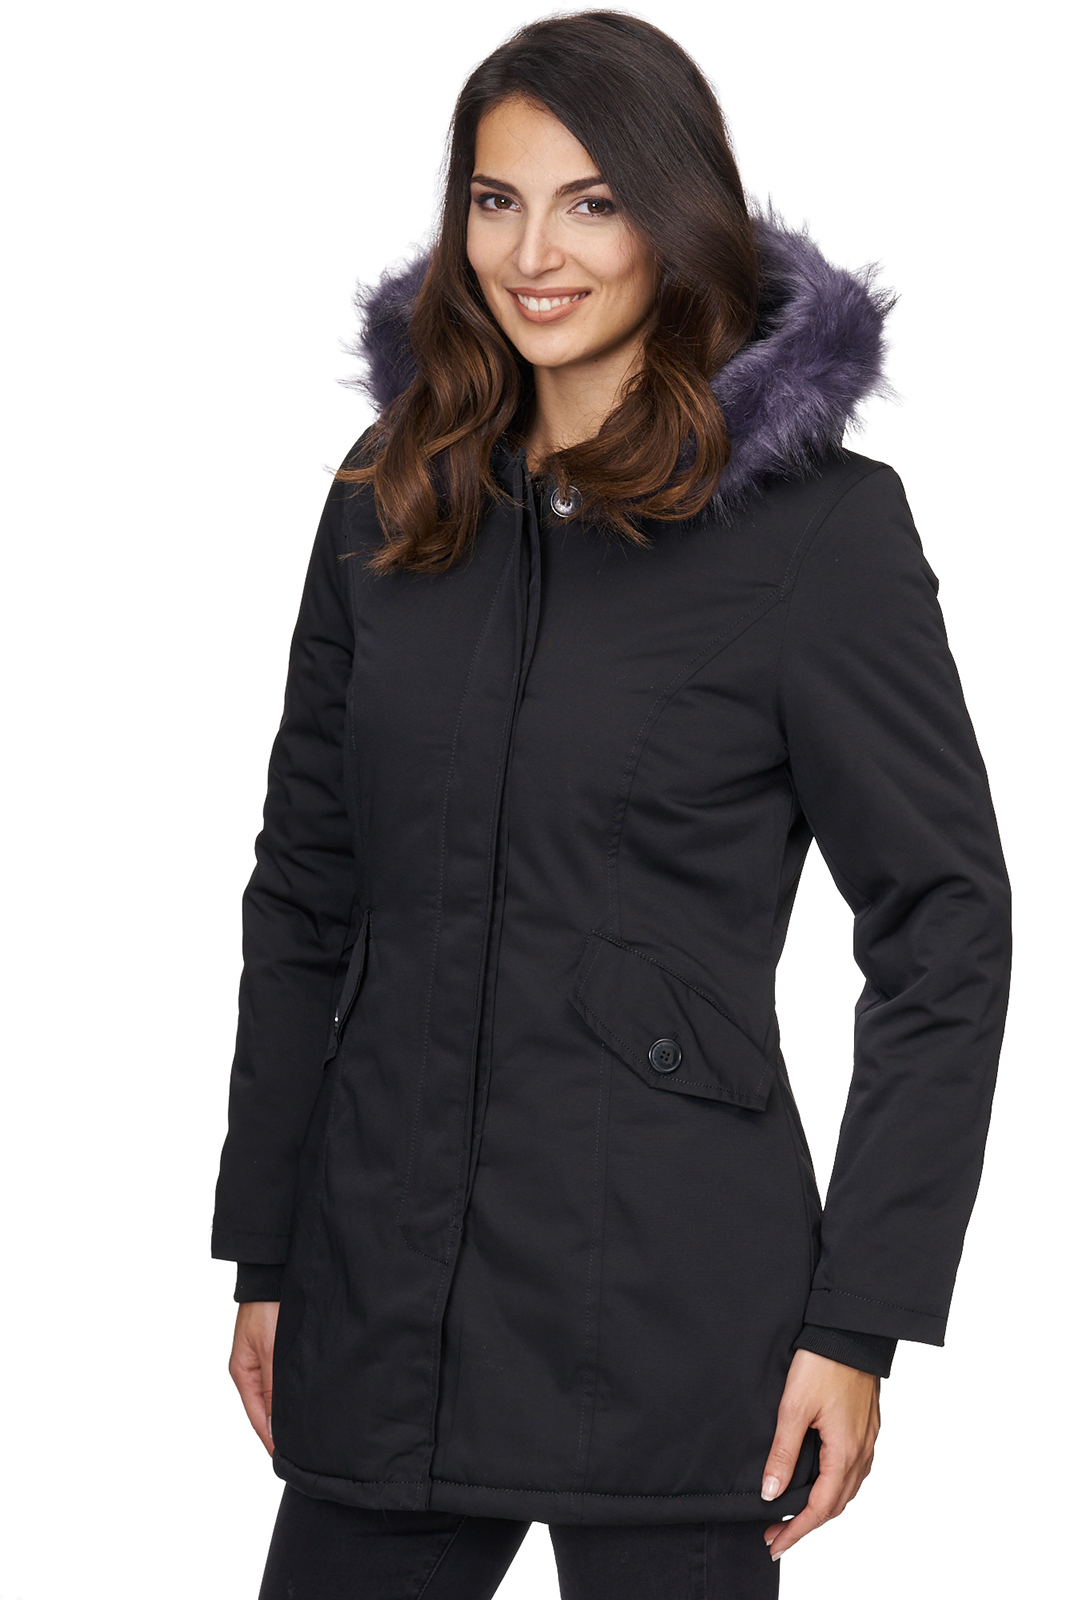 damen outdoor jacke winterjacke bergangsjacke mantel parka schwarz khaki d 224 ebay. Black Bedroom Furniture Sets. Home Design Ideas